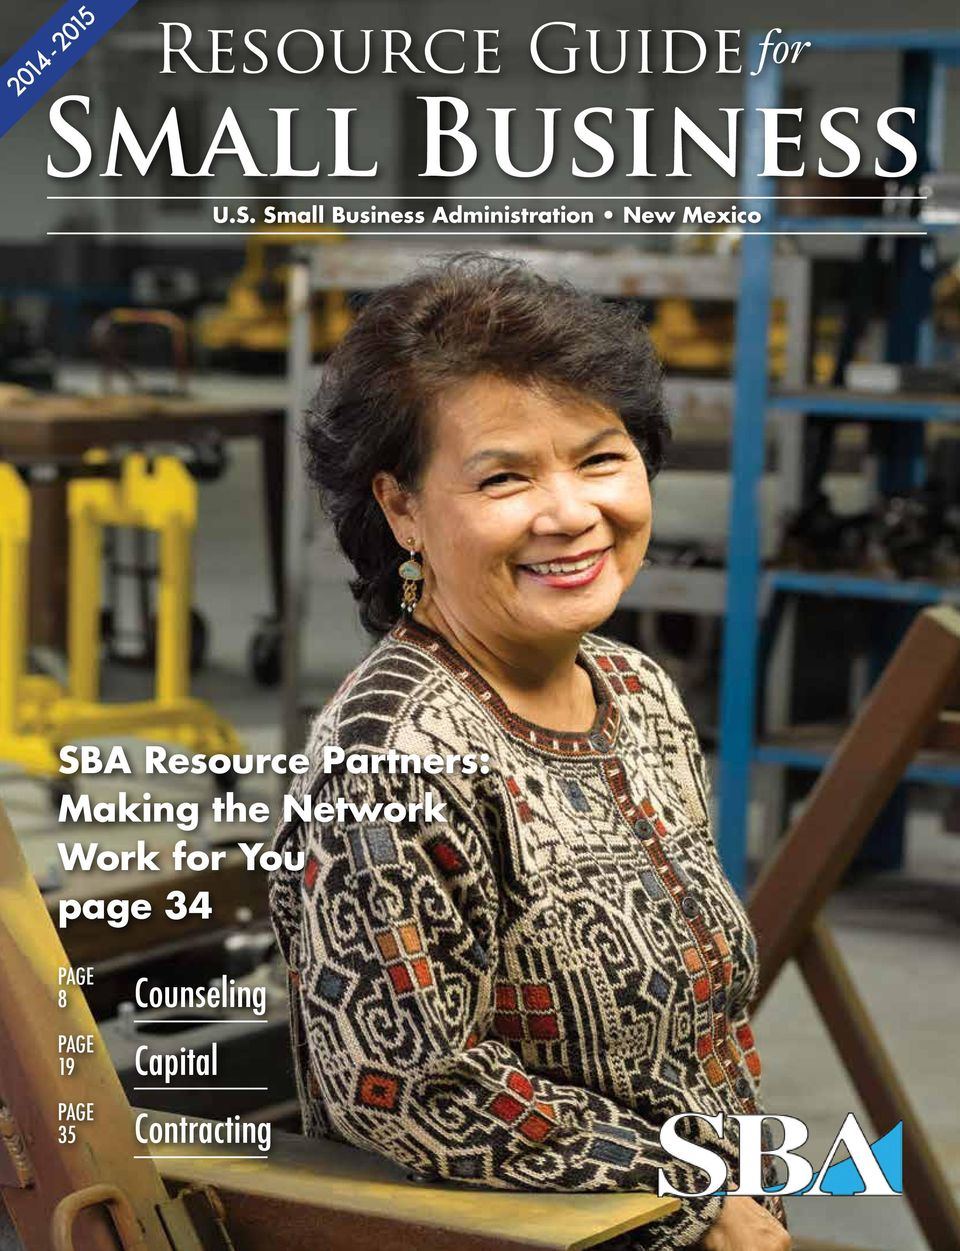 Small Business Administration New Mexico SBA